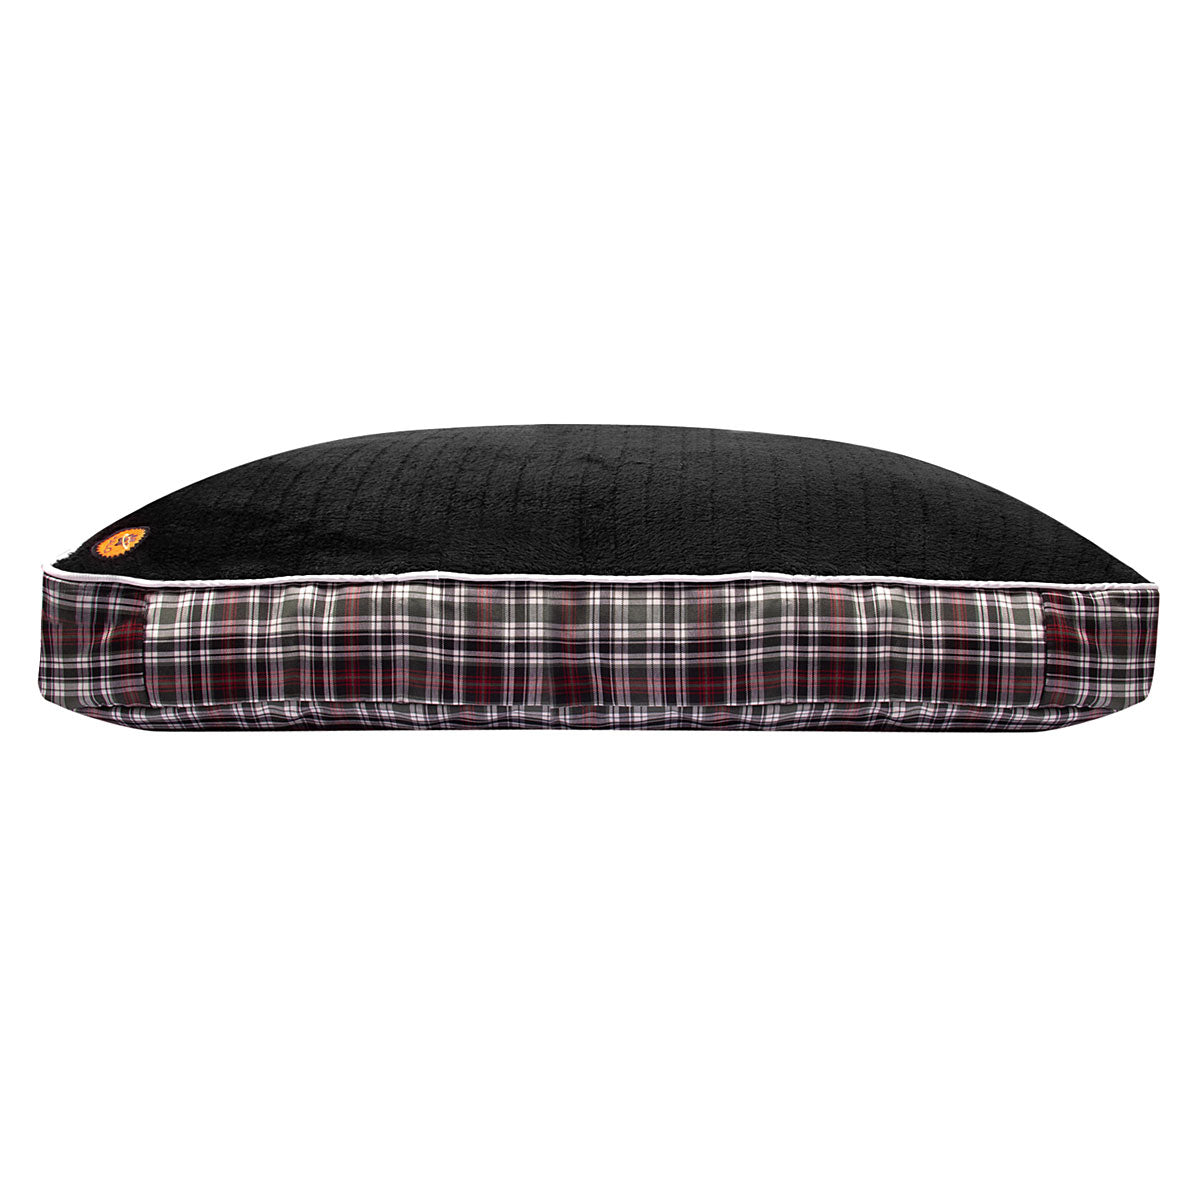 Halo Duck Green Plaid Rectangular Dog Bed_2223